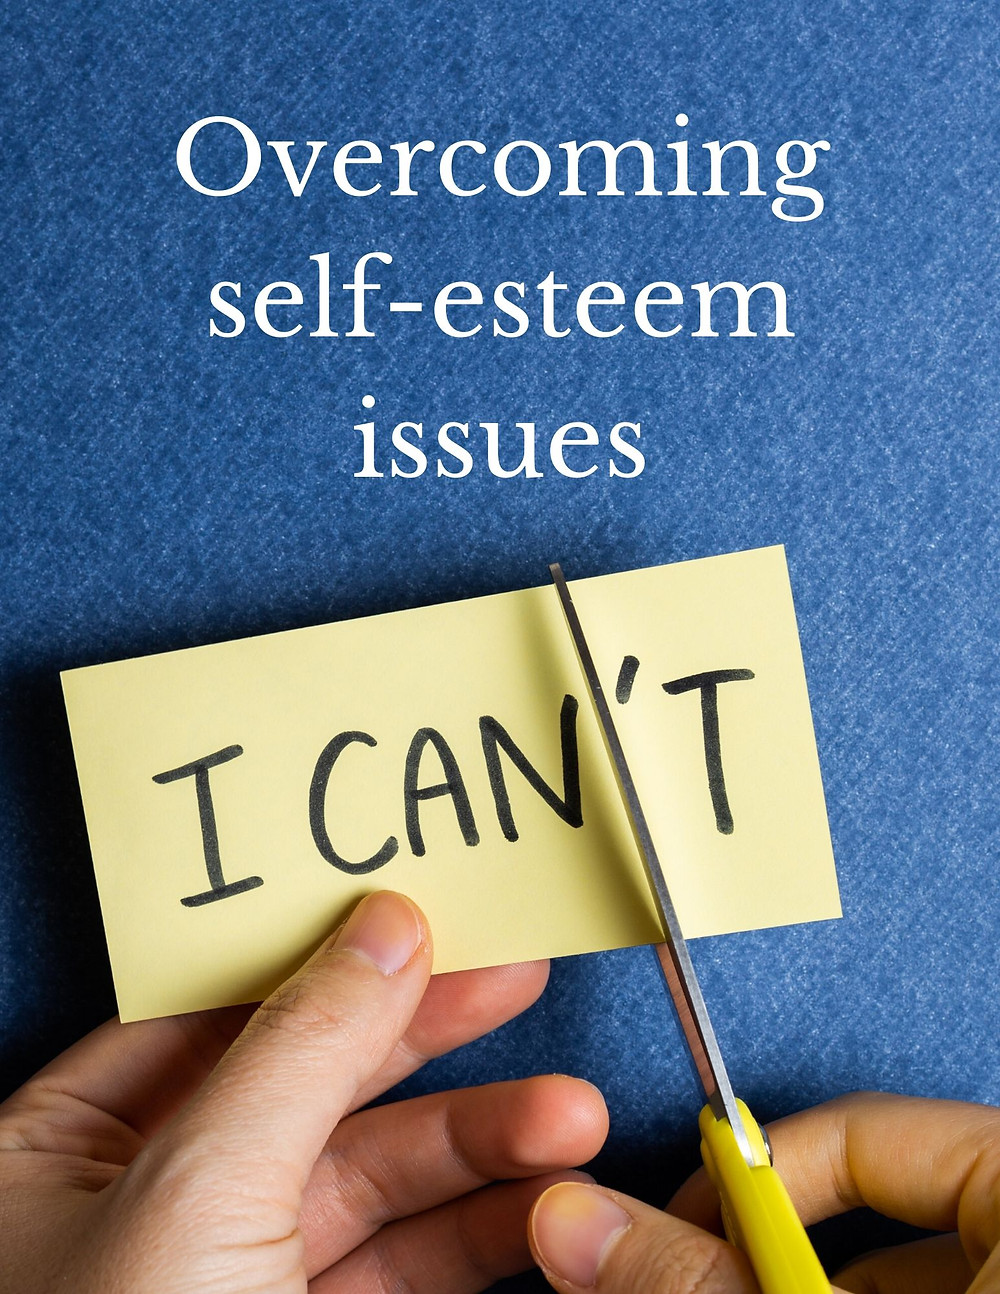 Overcoming self-esteem issues